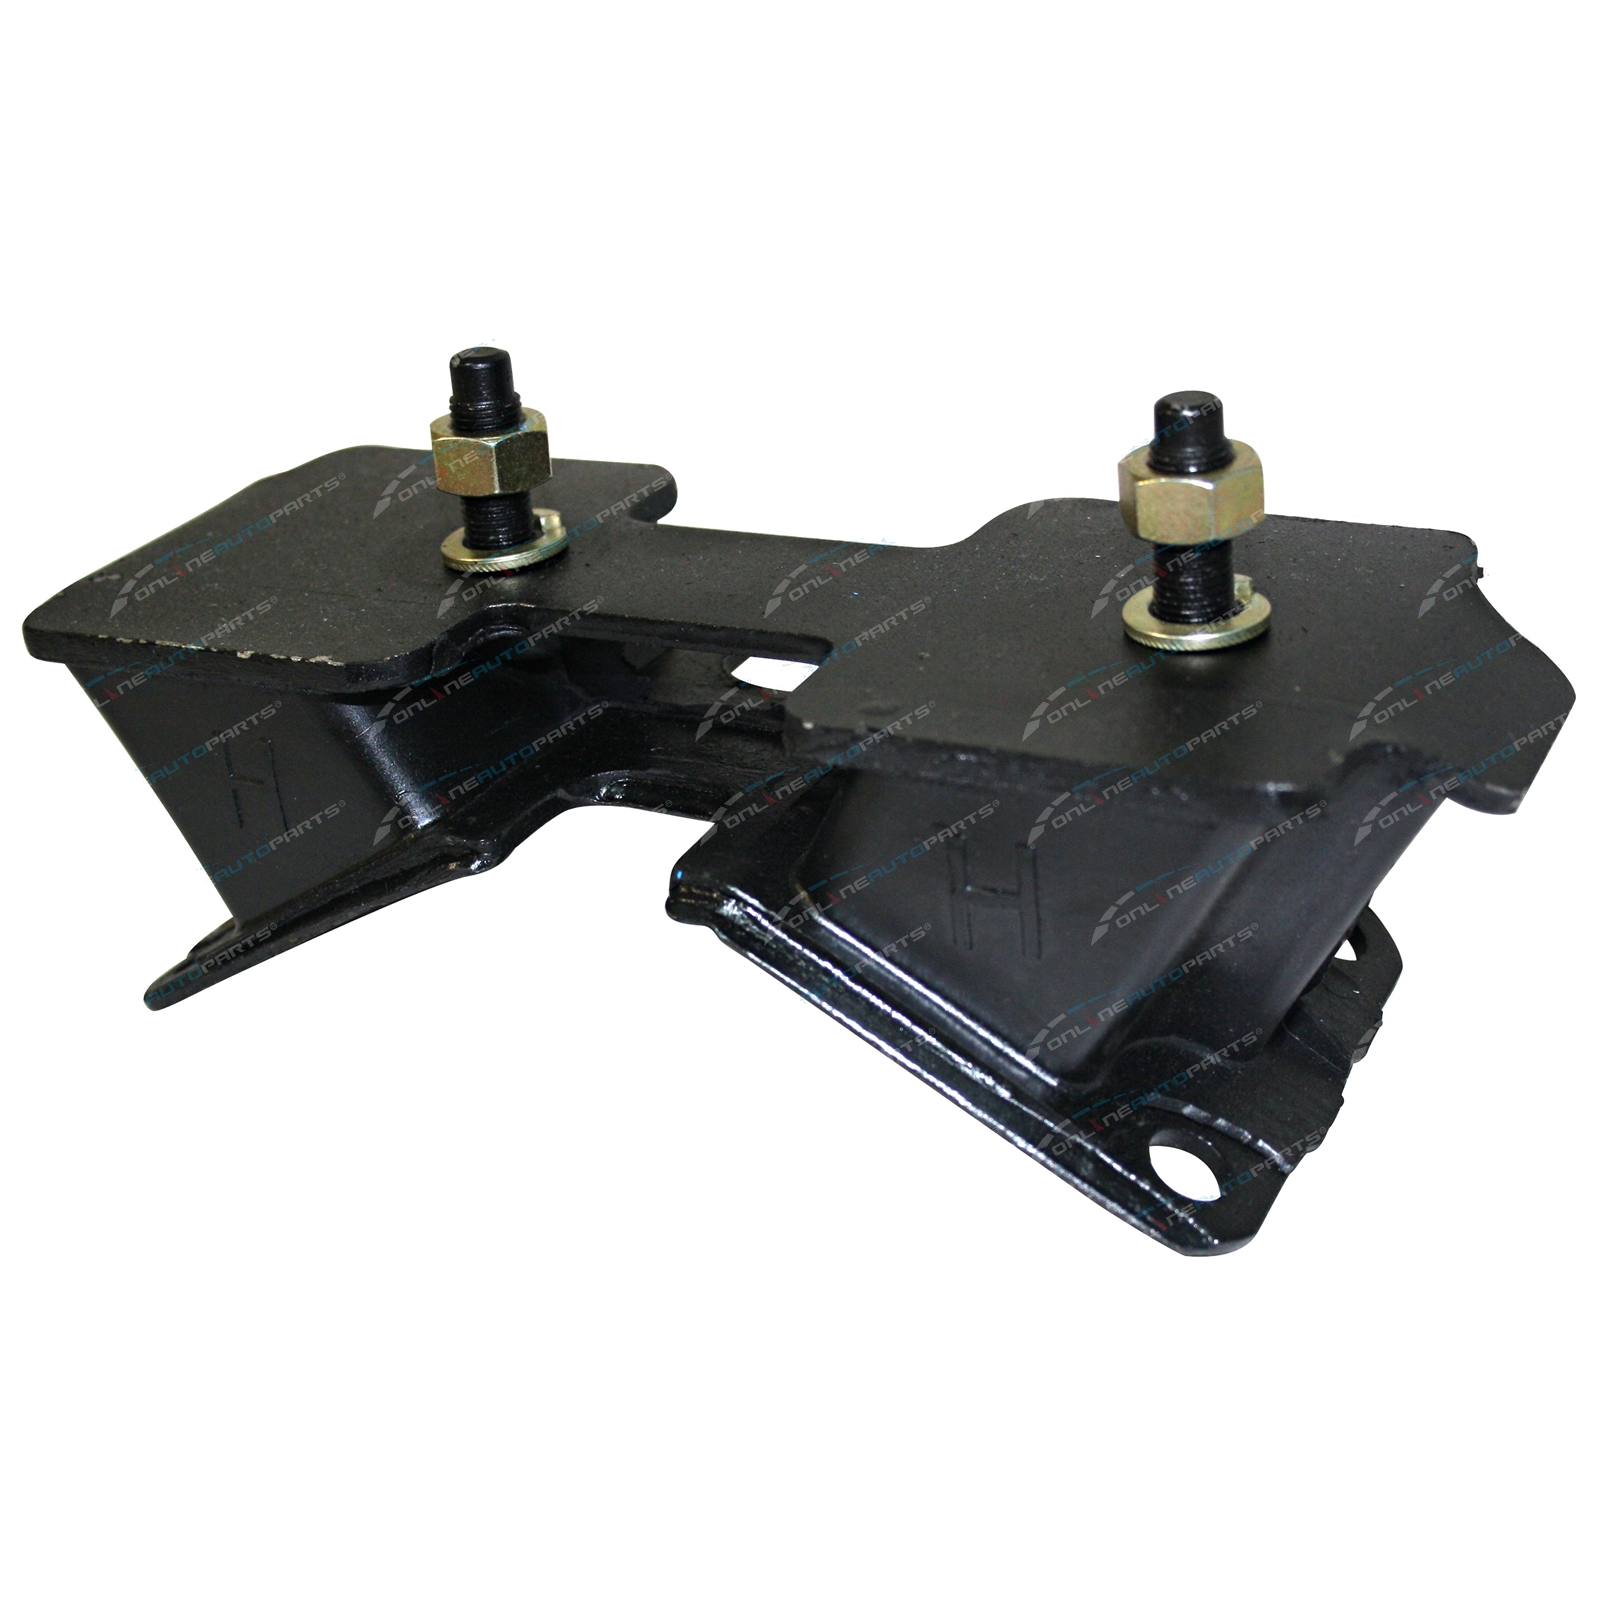 Transmission Mount (Gearbox / Transmission) OEM Replacement